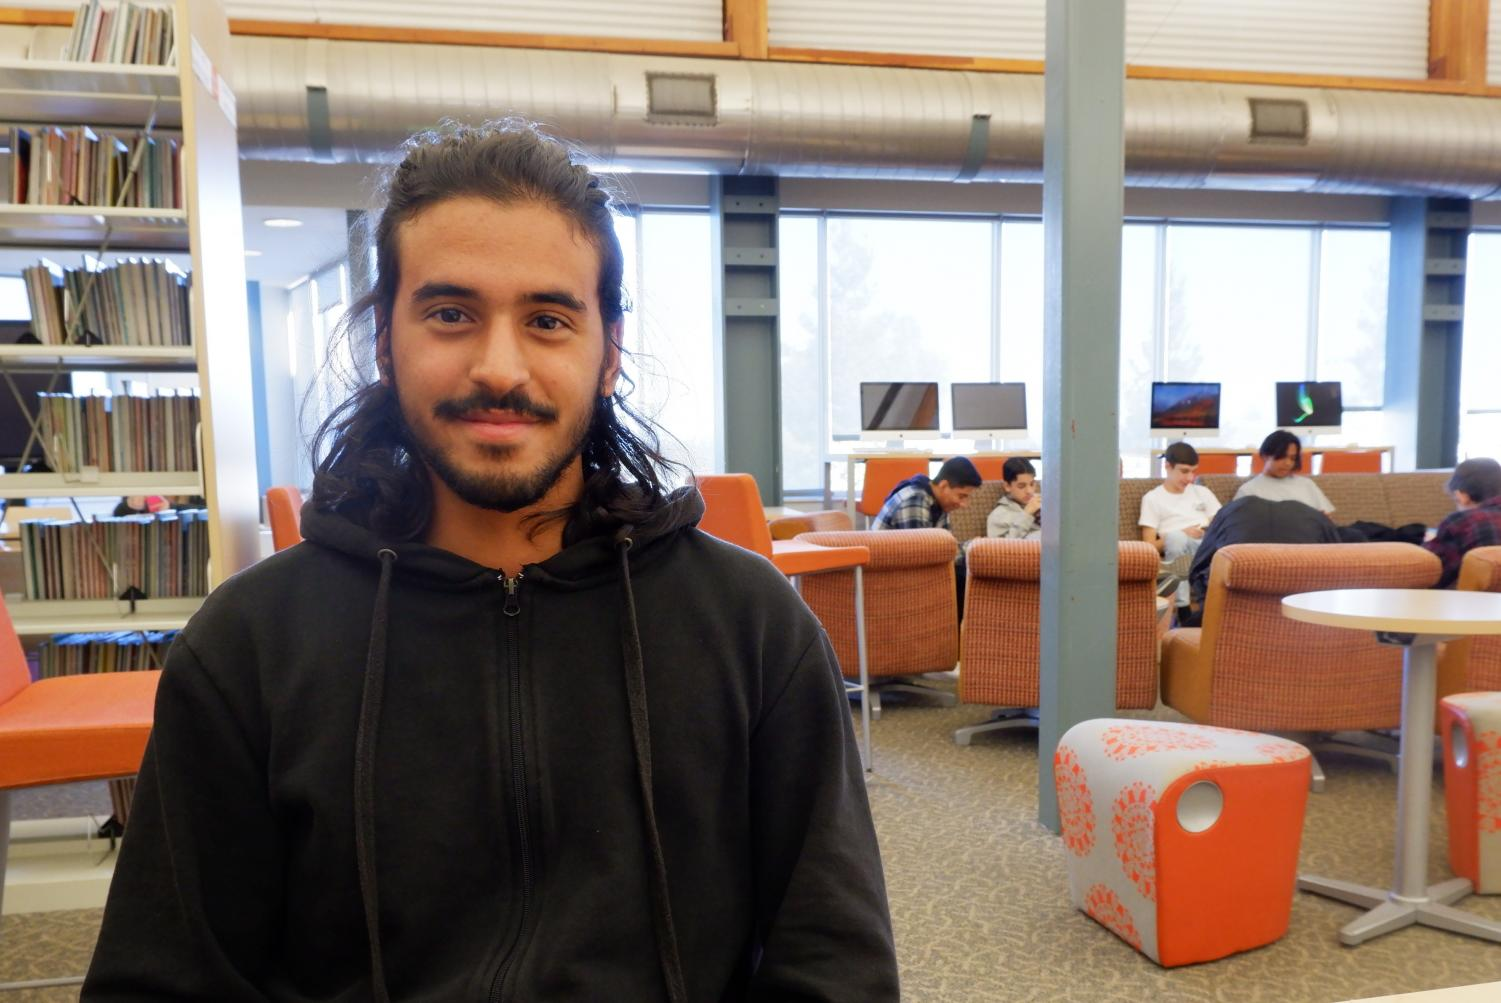 Adam Ajroudi from Tunisia is a current Woodside senior. He is trilingual and speaks Arabic, French, and English.